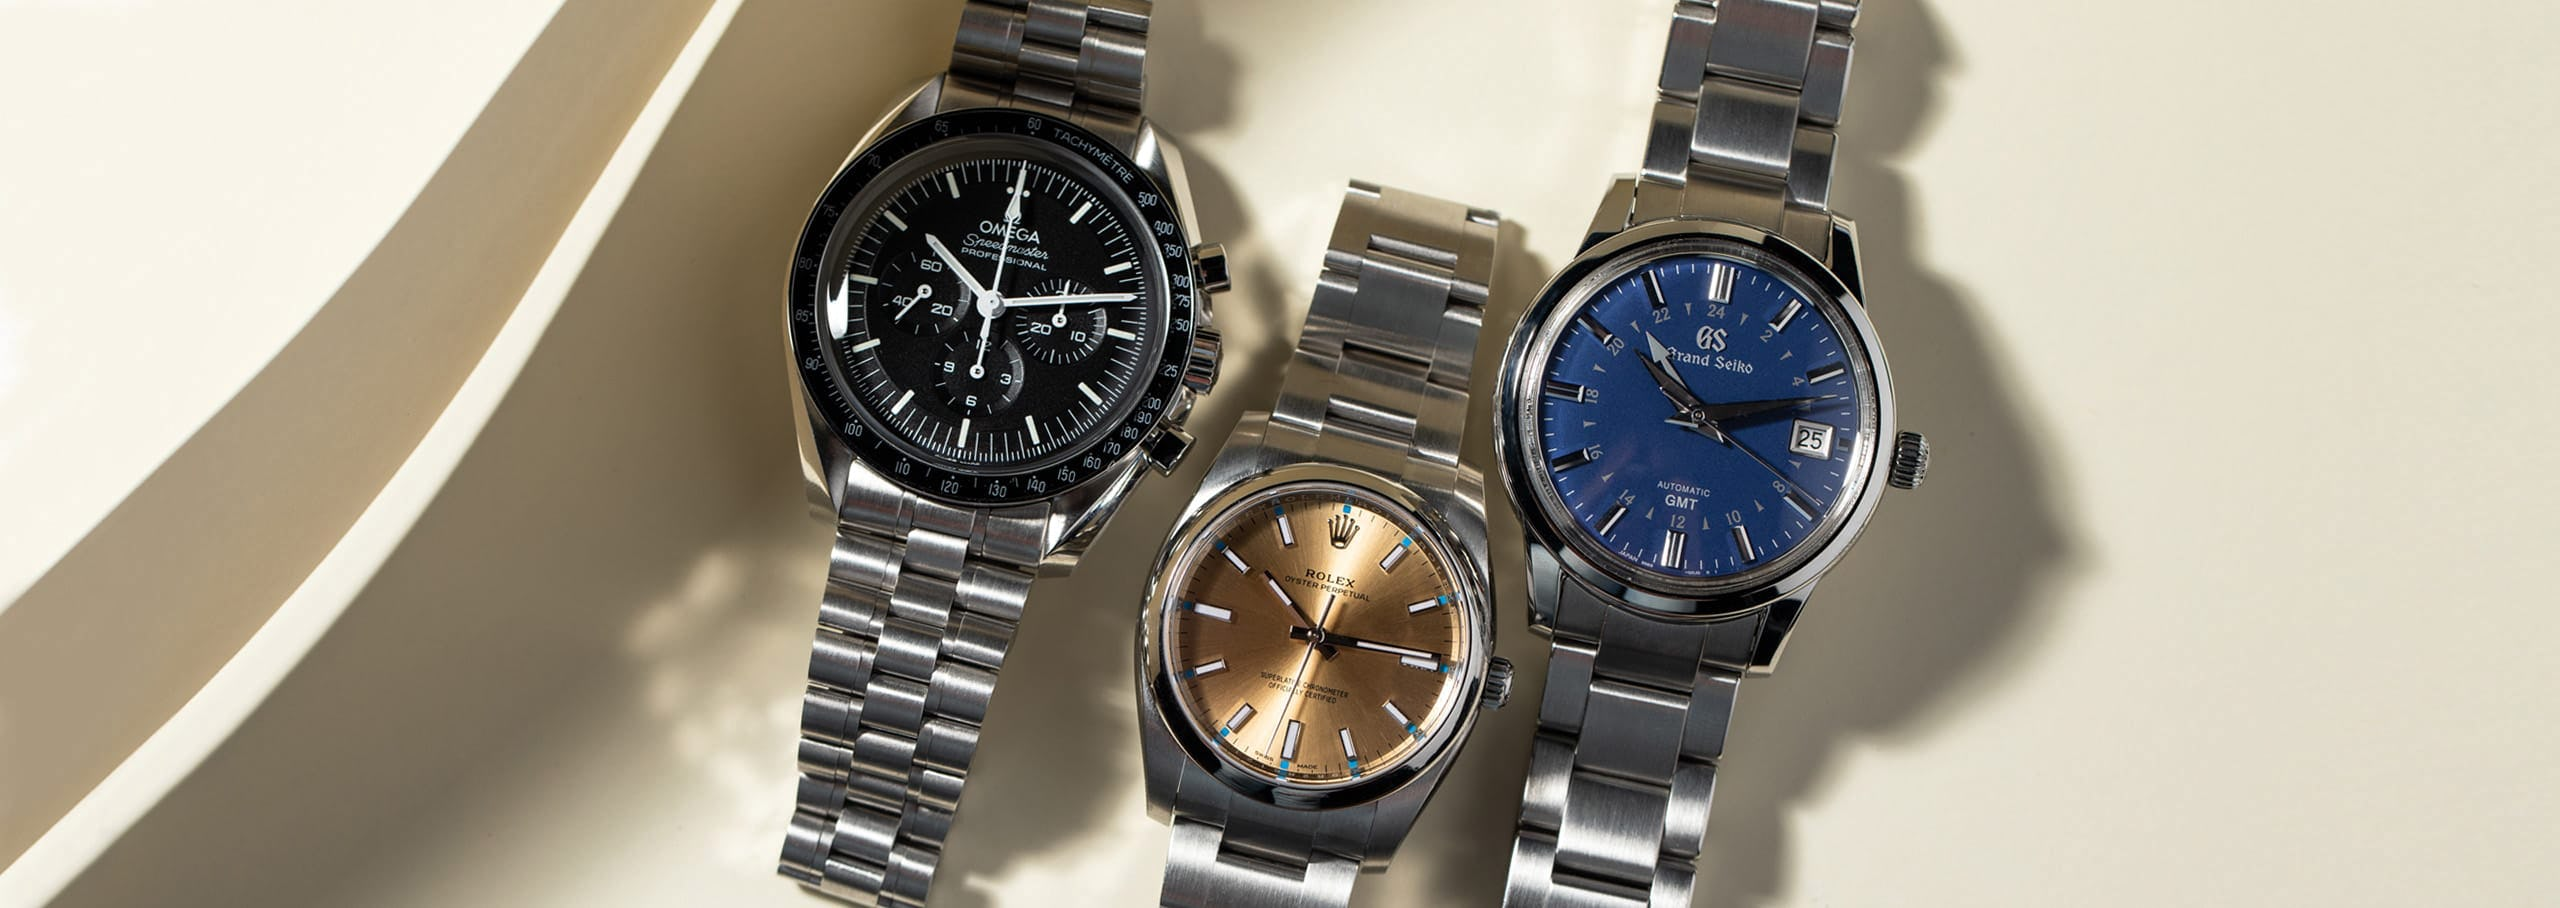 Graduation Gifts: The Watch Edition